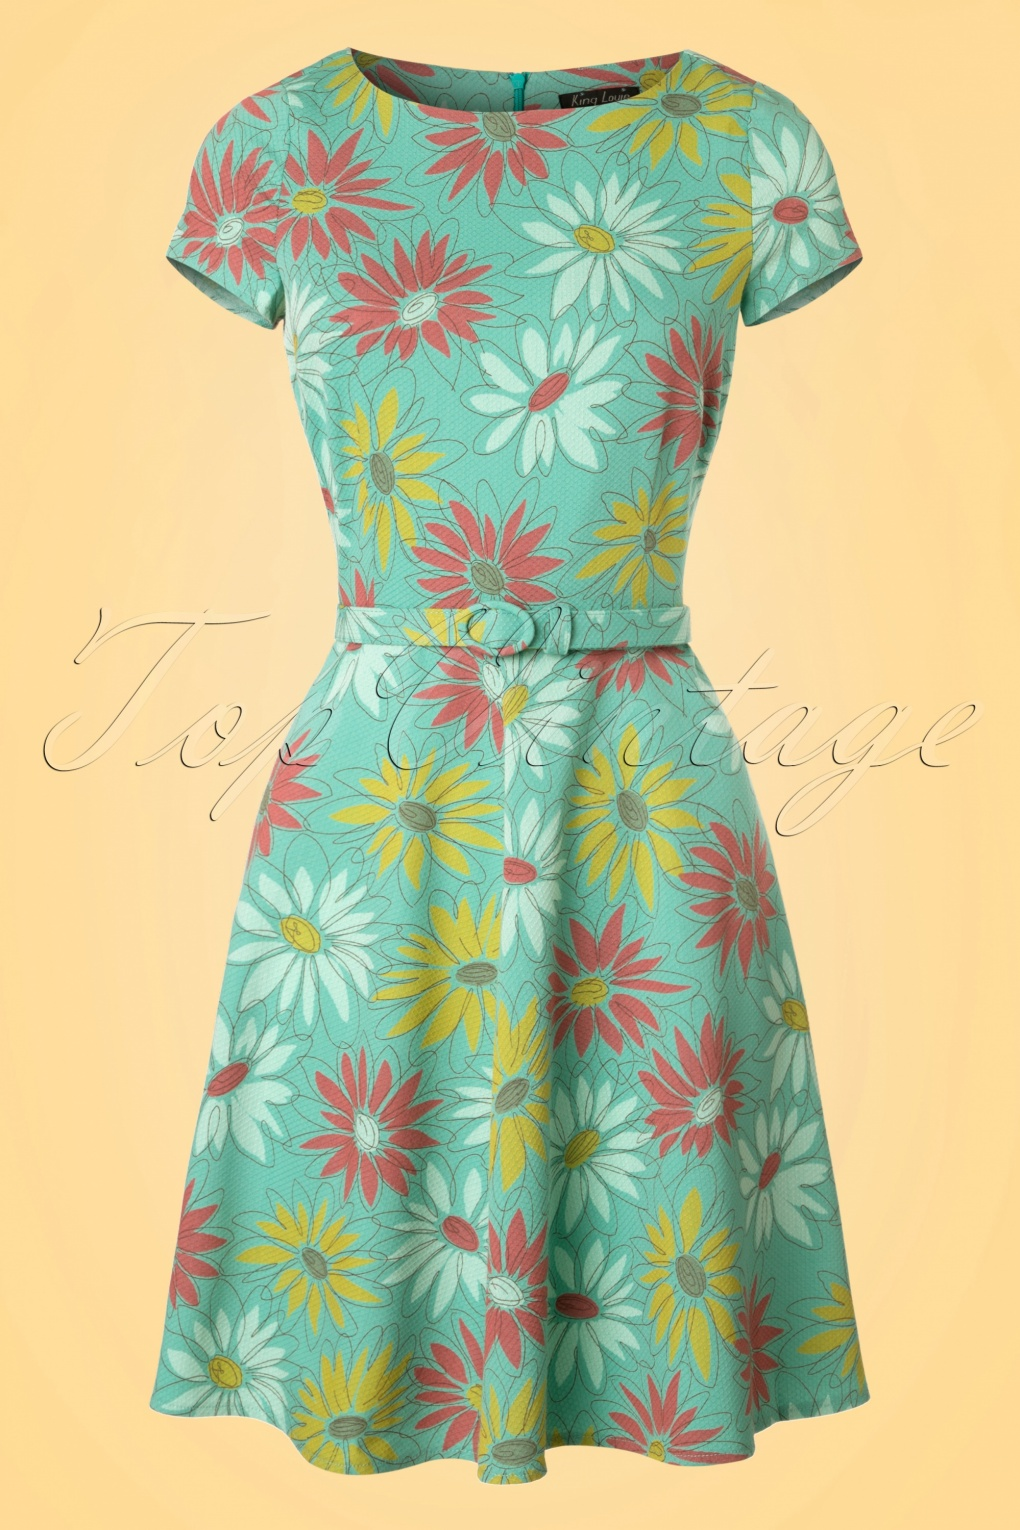 1960s Style Dresses- Retro Inspired Fashion 60s Betty Lively Dress in Summer Green £110.36 AT vintagedancer.com